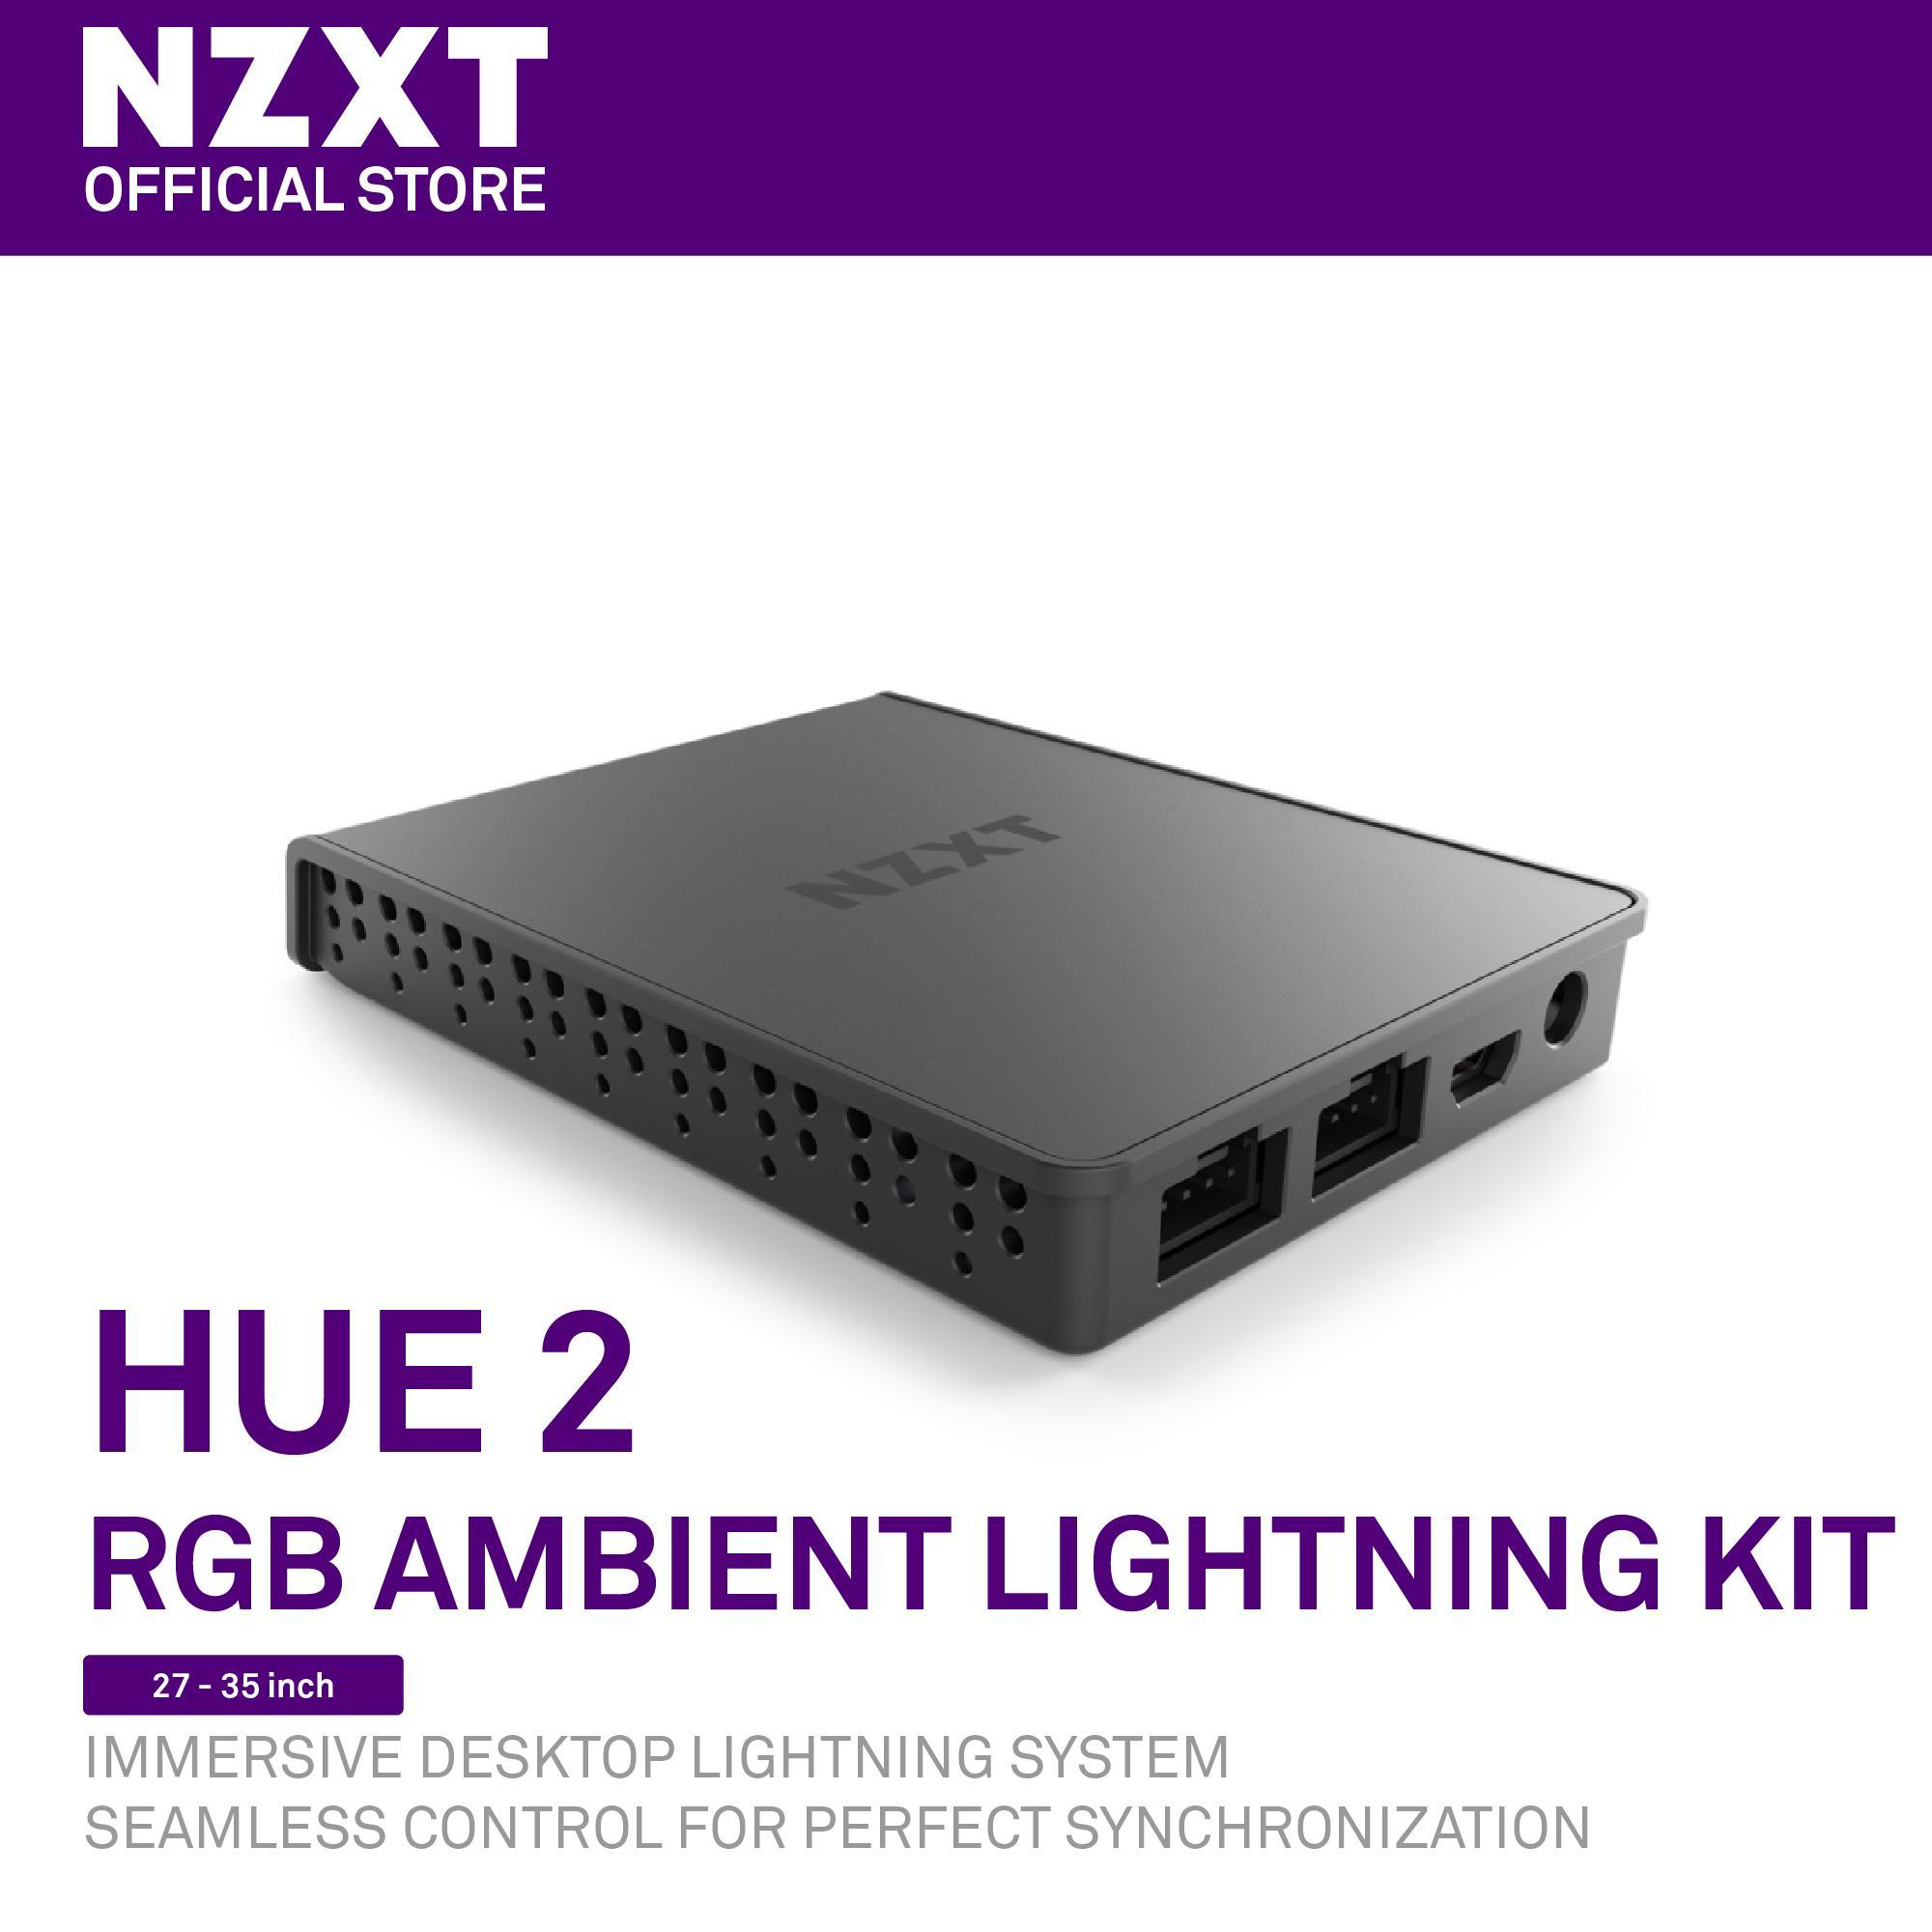 NZXT HUE 2 RGB Ambient Lighting Kit [For 27-35 inch Displays]